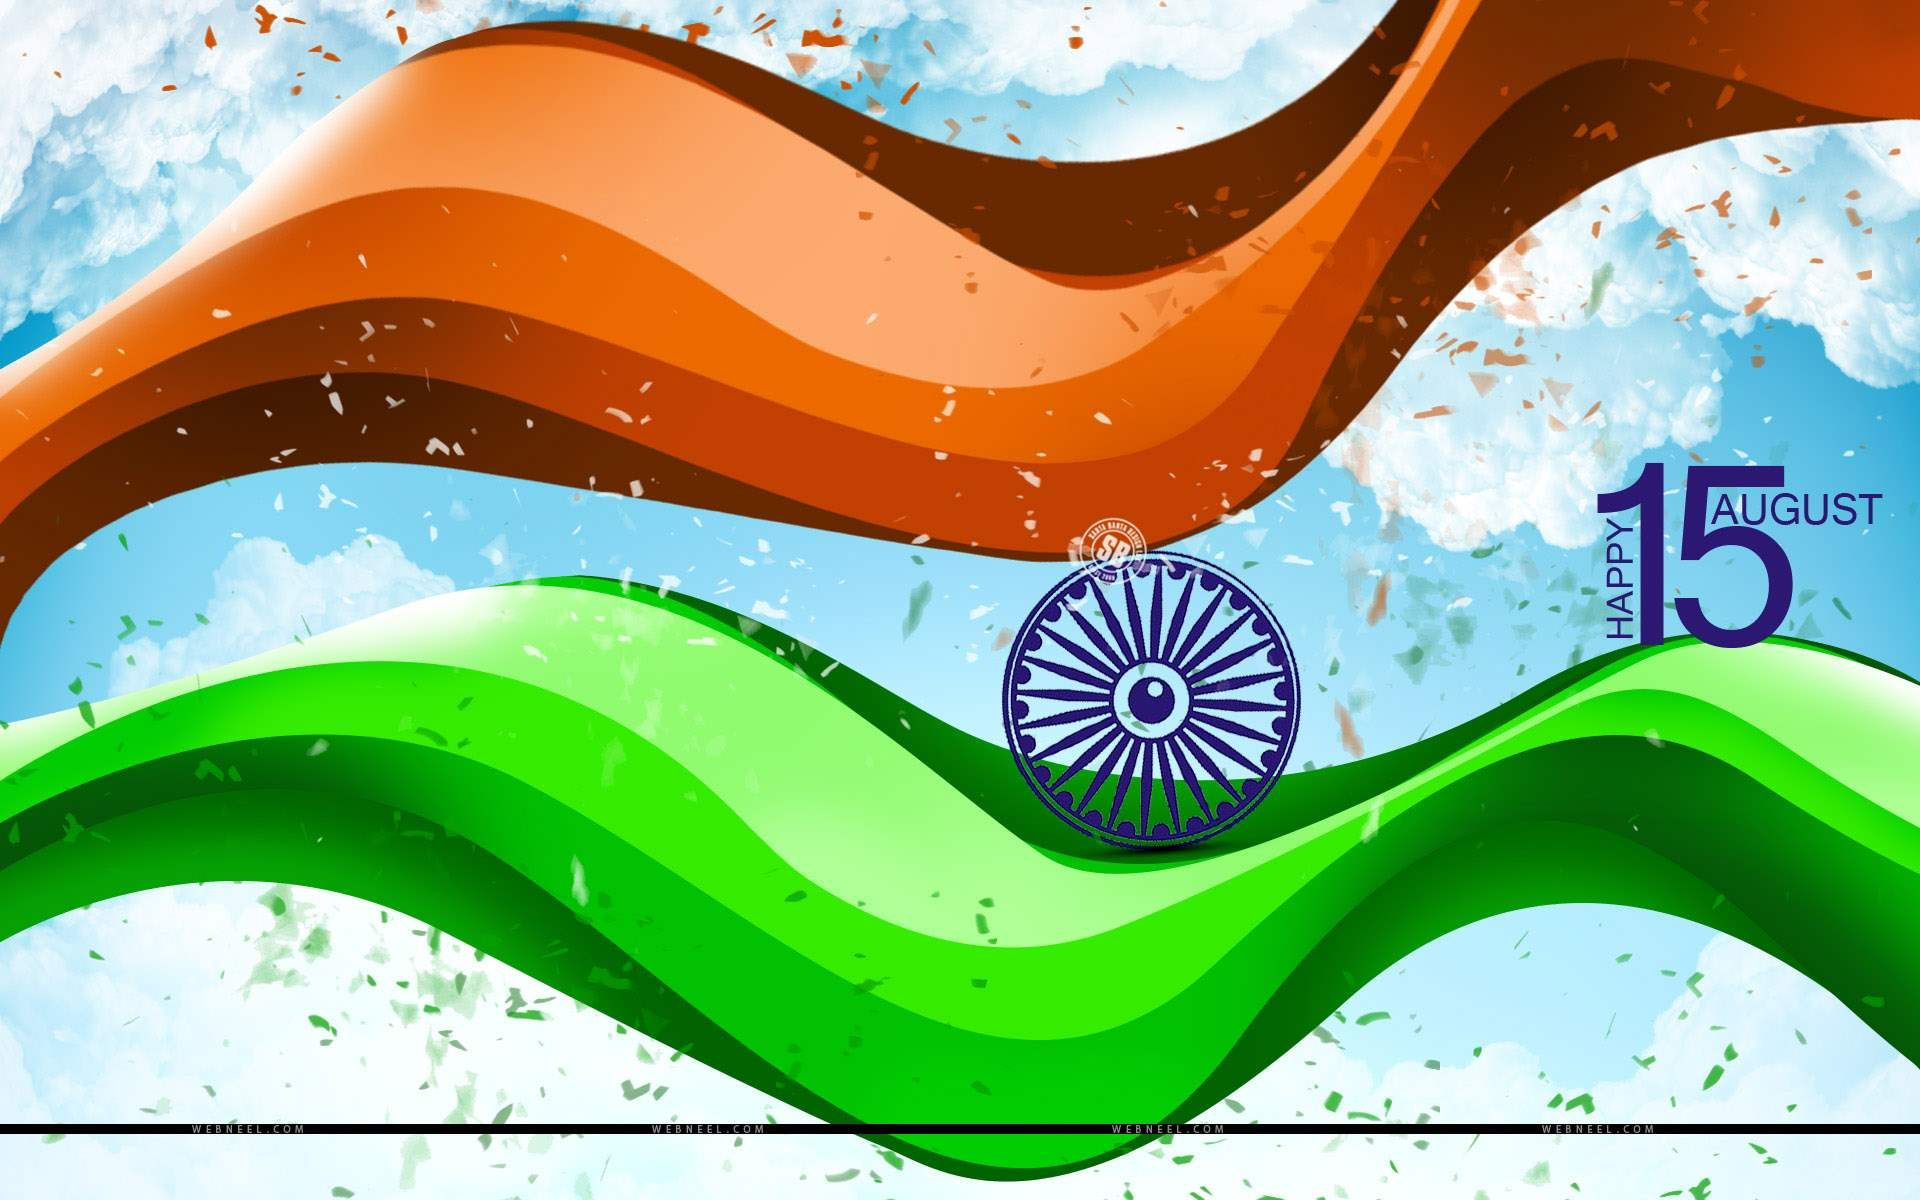 best ideas about independence day images hd 17 best ideas about independence day images hd independence day wishes independence day hd and independence day 3d